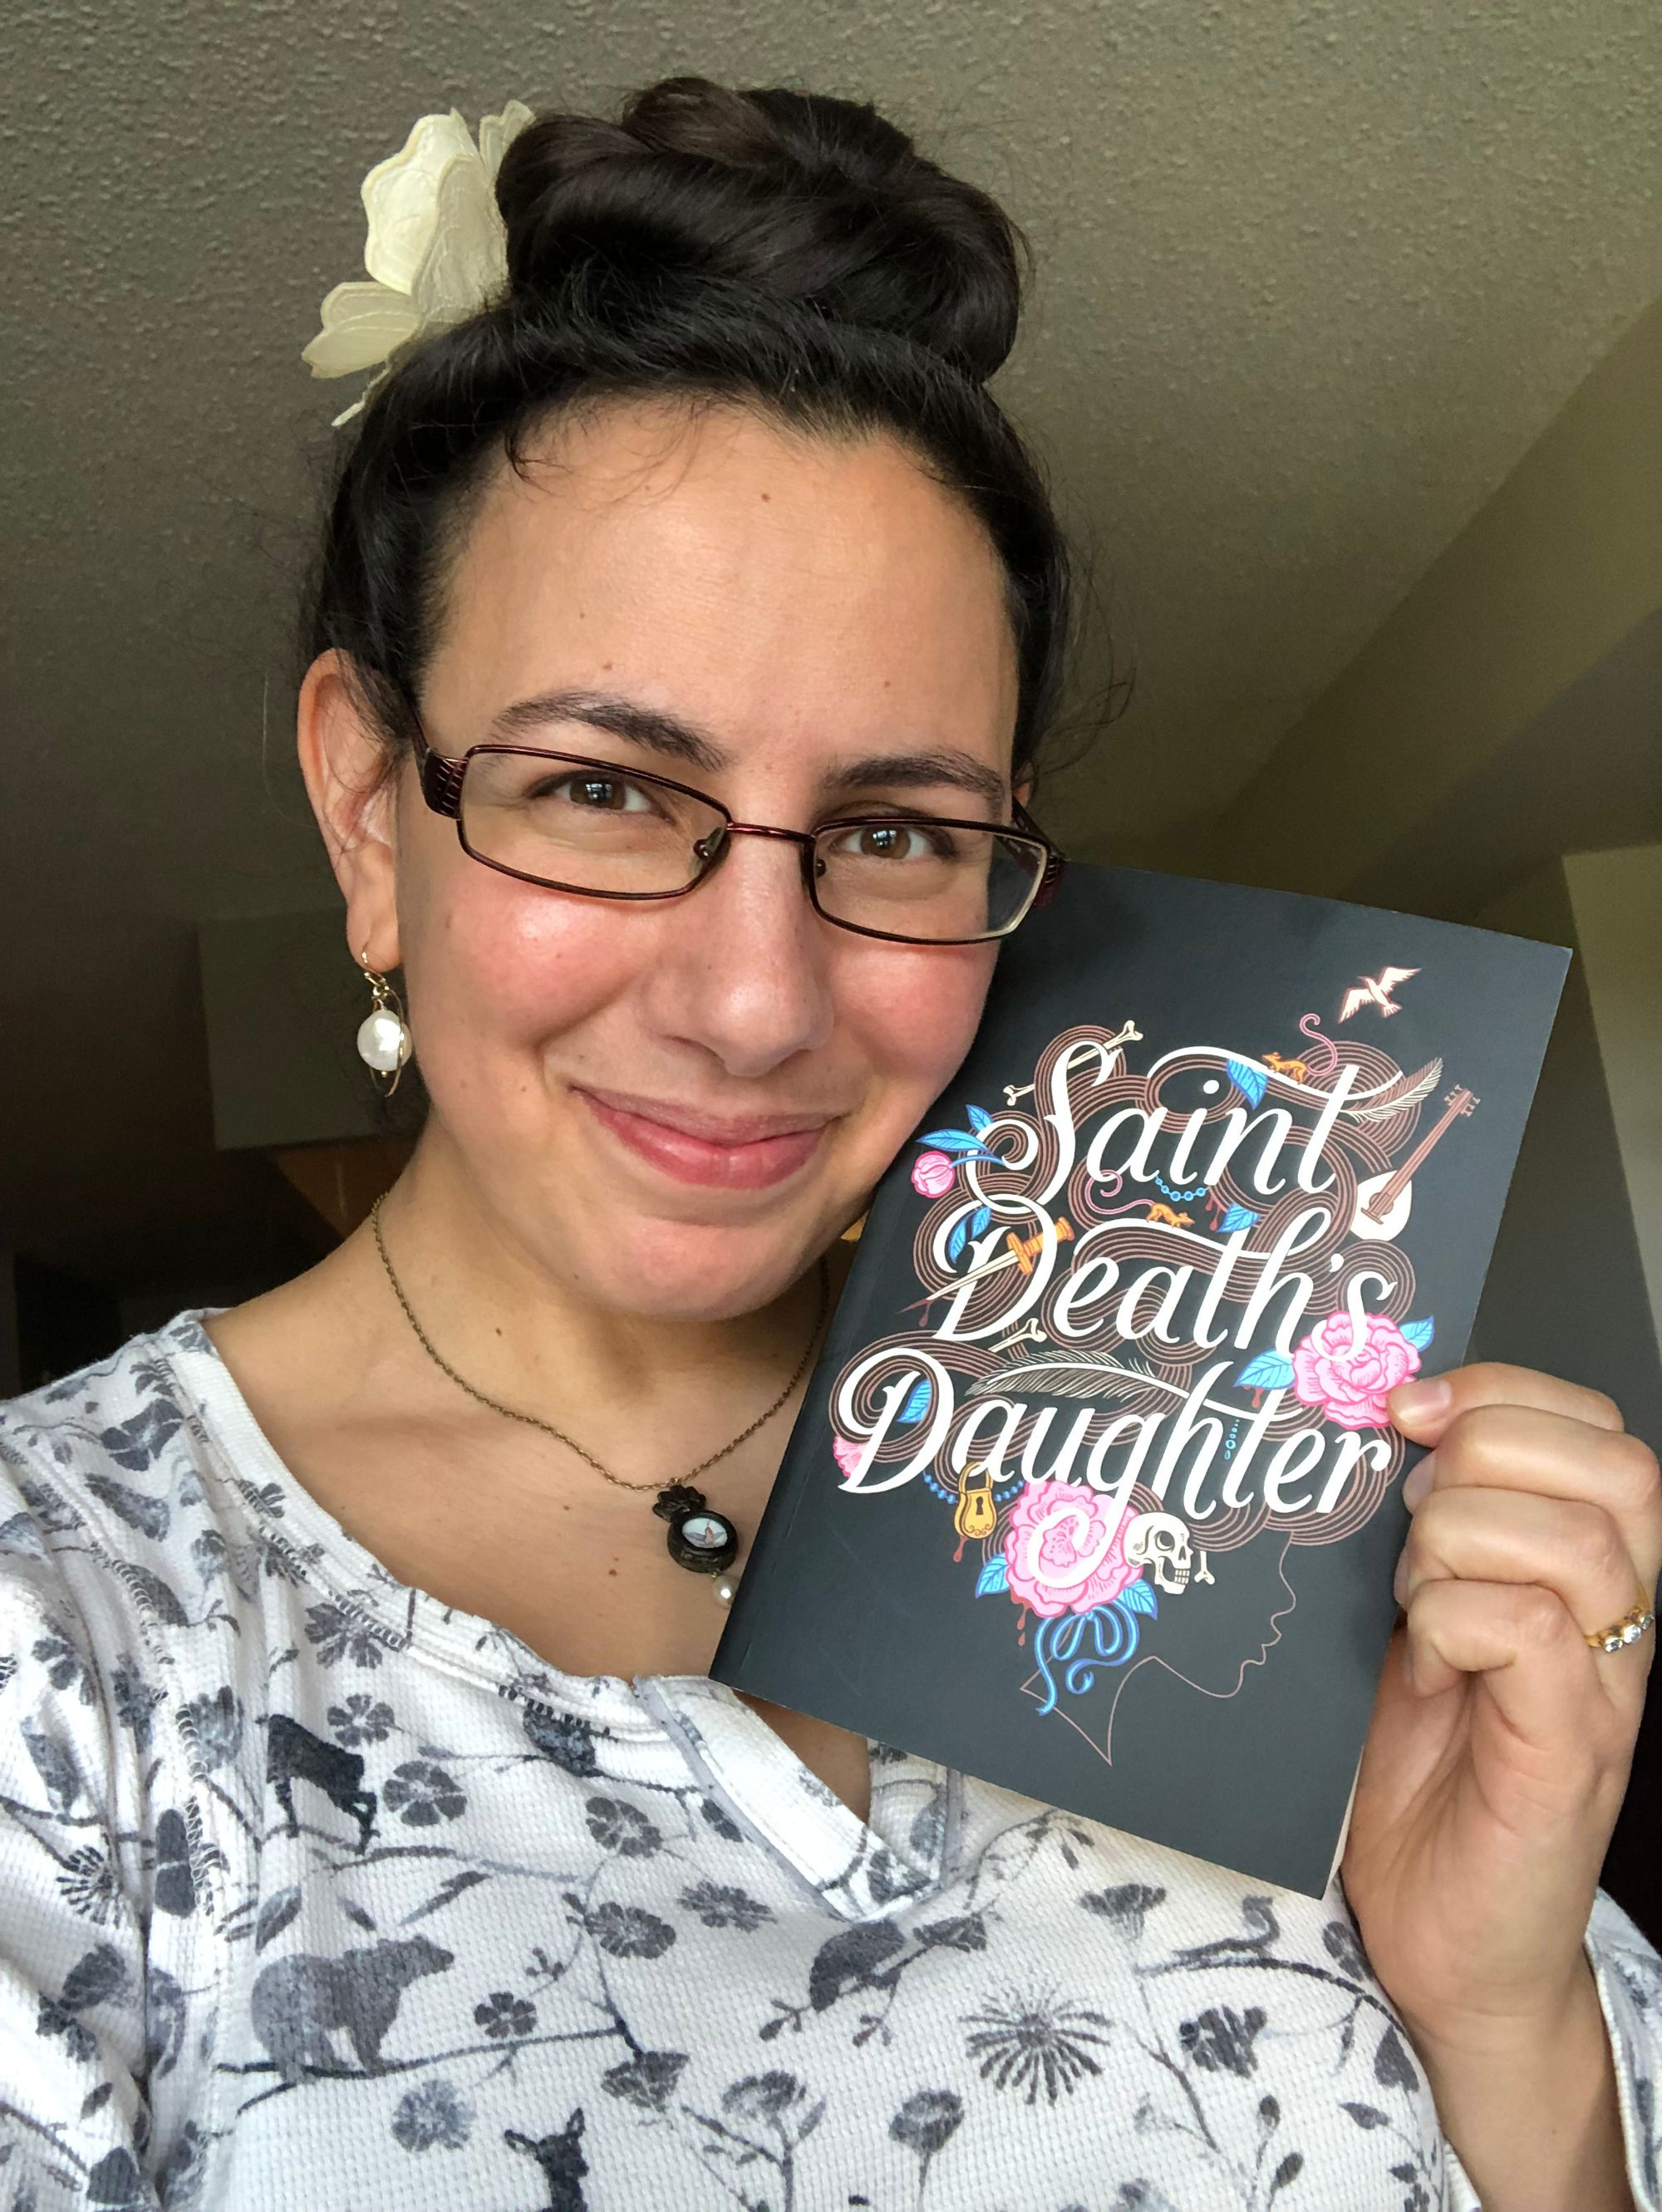 A selfie in which I tenderly rest my cheek against an advanced reading copy of C. S. E. Cooney's SAINT DEATH'S DAUGHTER while looking at the camera. Cover description: against a black background, the title words are in a cursive italic script embellished with pink roses, blue foliage, a dagger, bones, musical instruments, a padlock and a bird in flight. These design elements make up the tangled brown hair of a young woman's profile outlined in brown against the black.